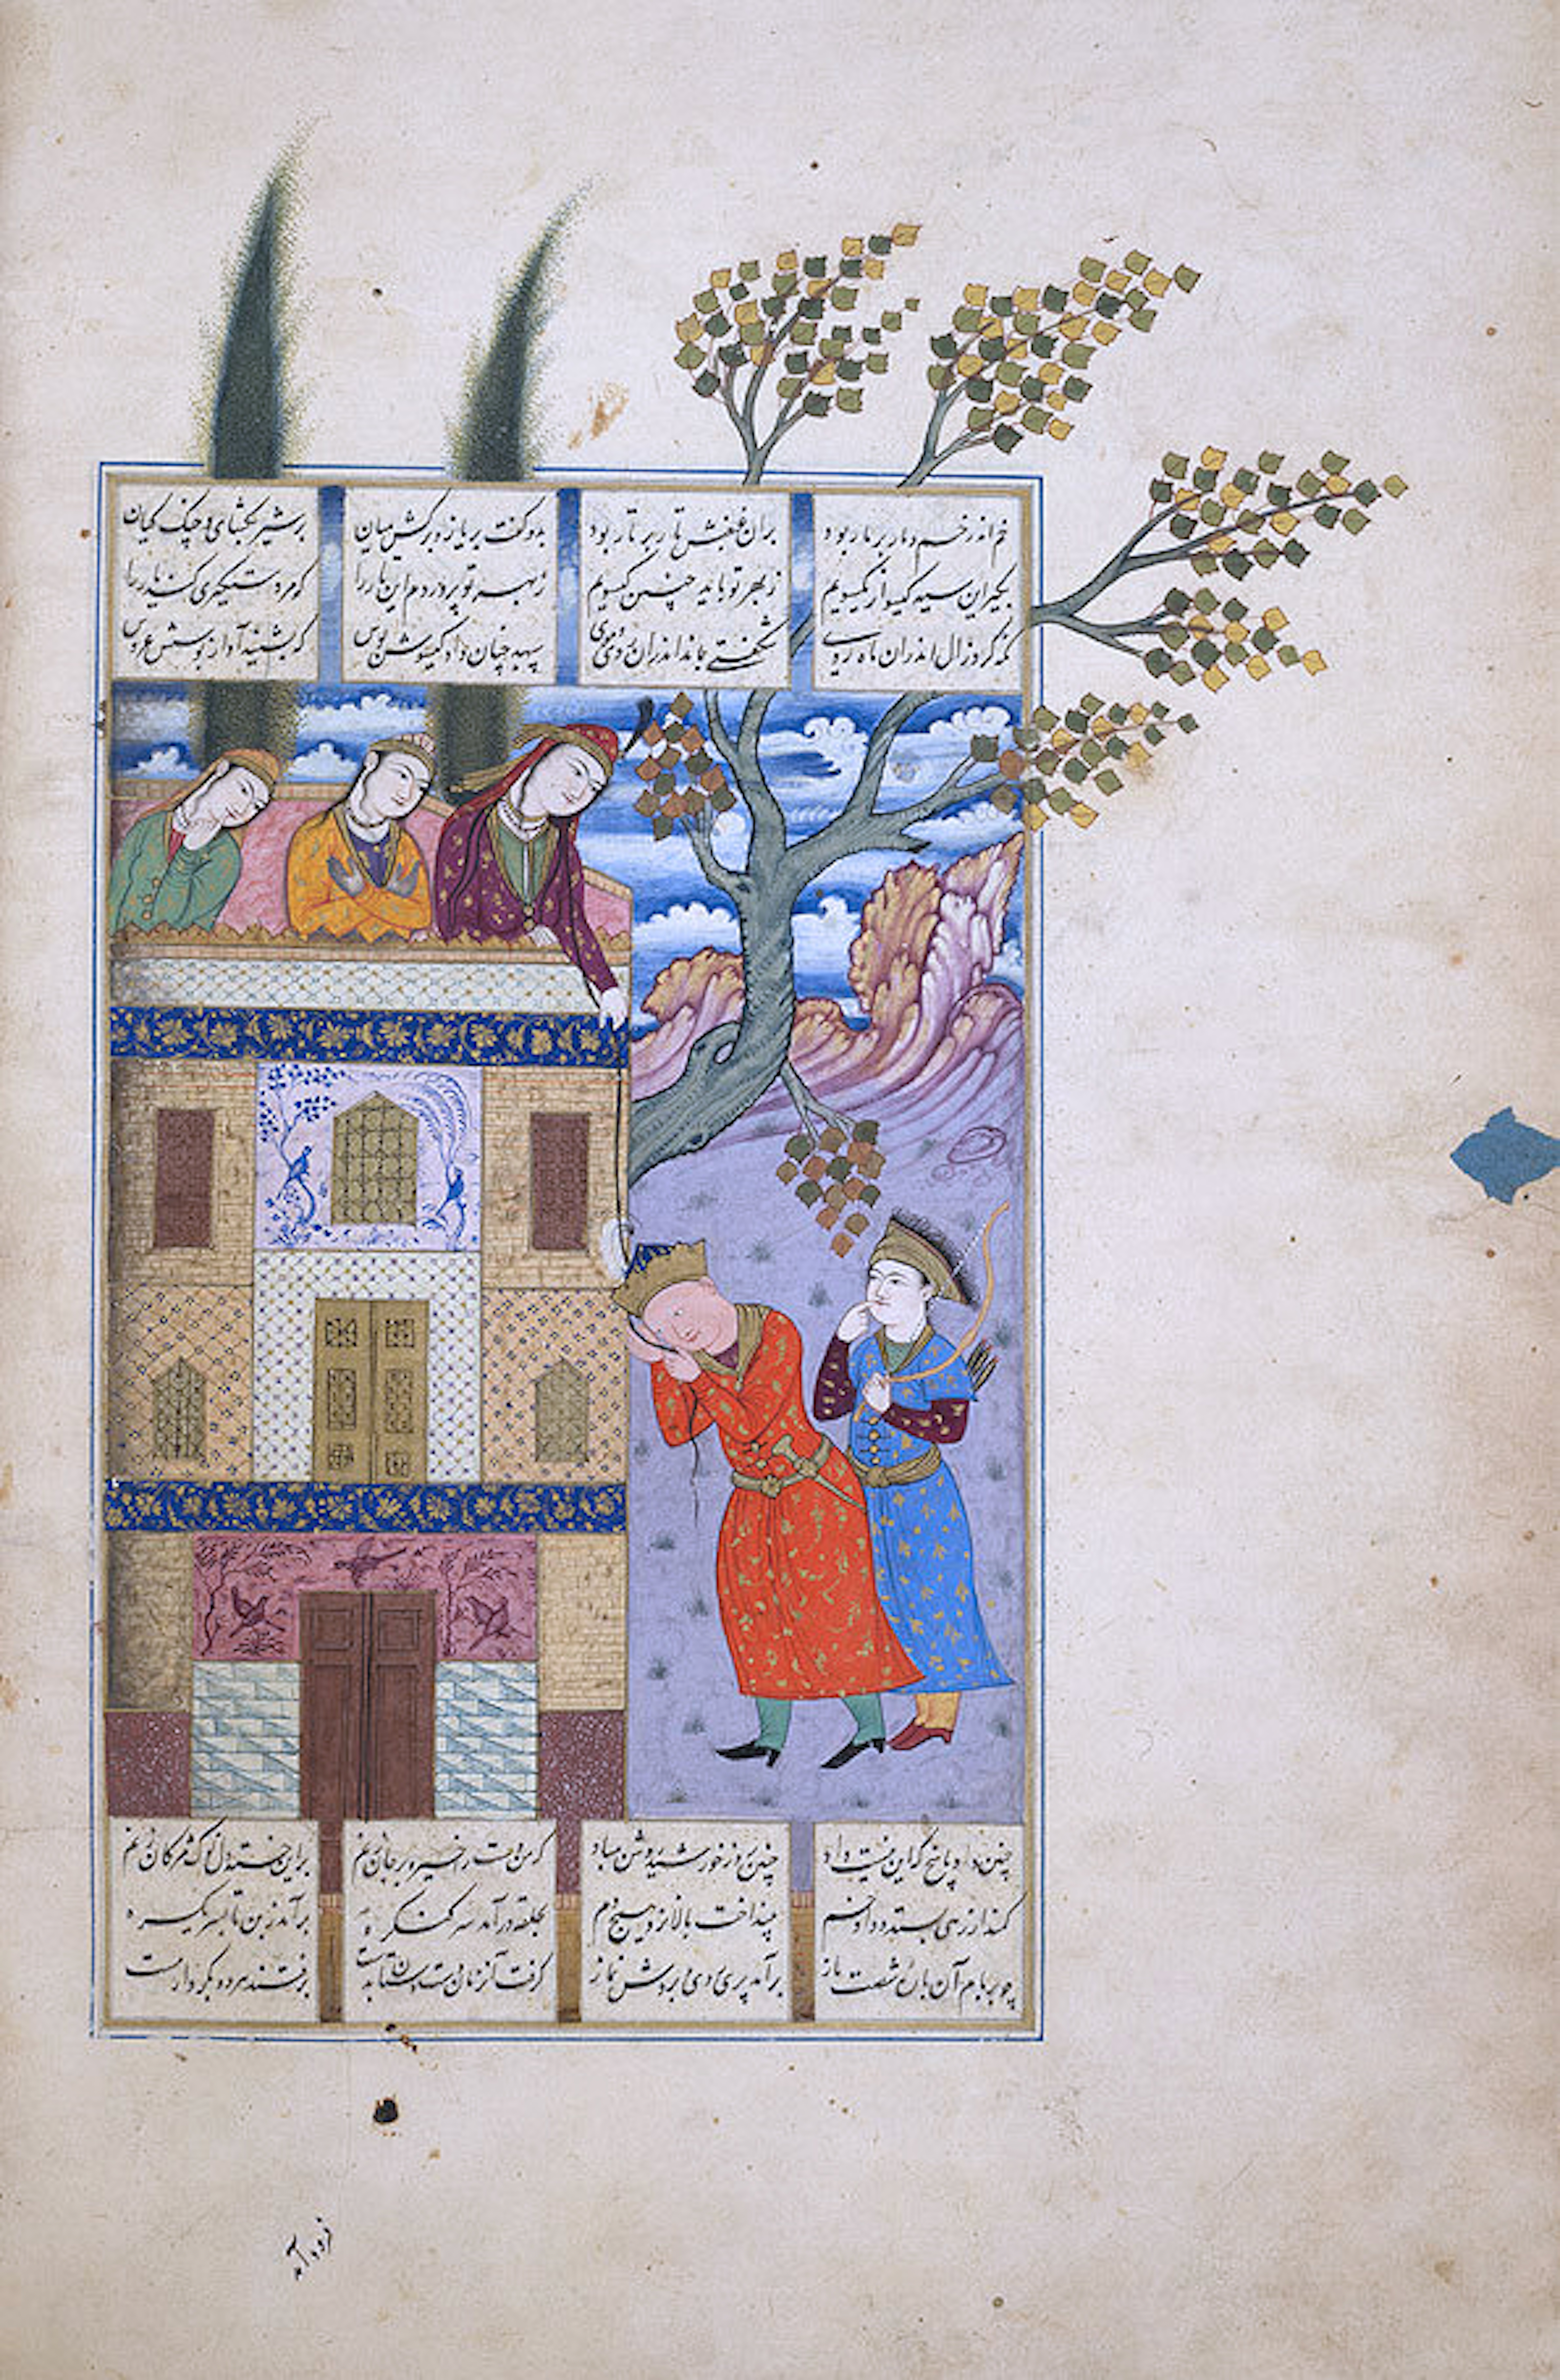 Rudabeh, letting her hair down for her lover Zal, a prince from Kabul, from Ferdowsi's epic tale, the Shahnameh. This story is considered to be the basis for the Grimm Brothers fairy tale about Rapunzel.